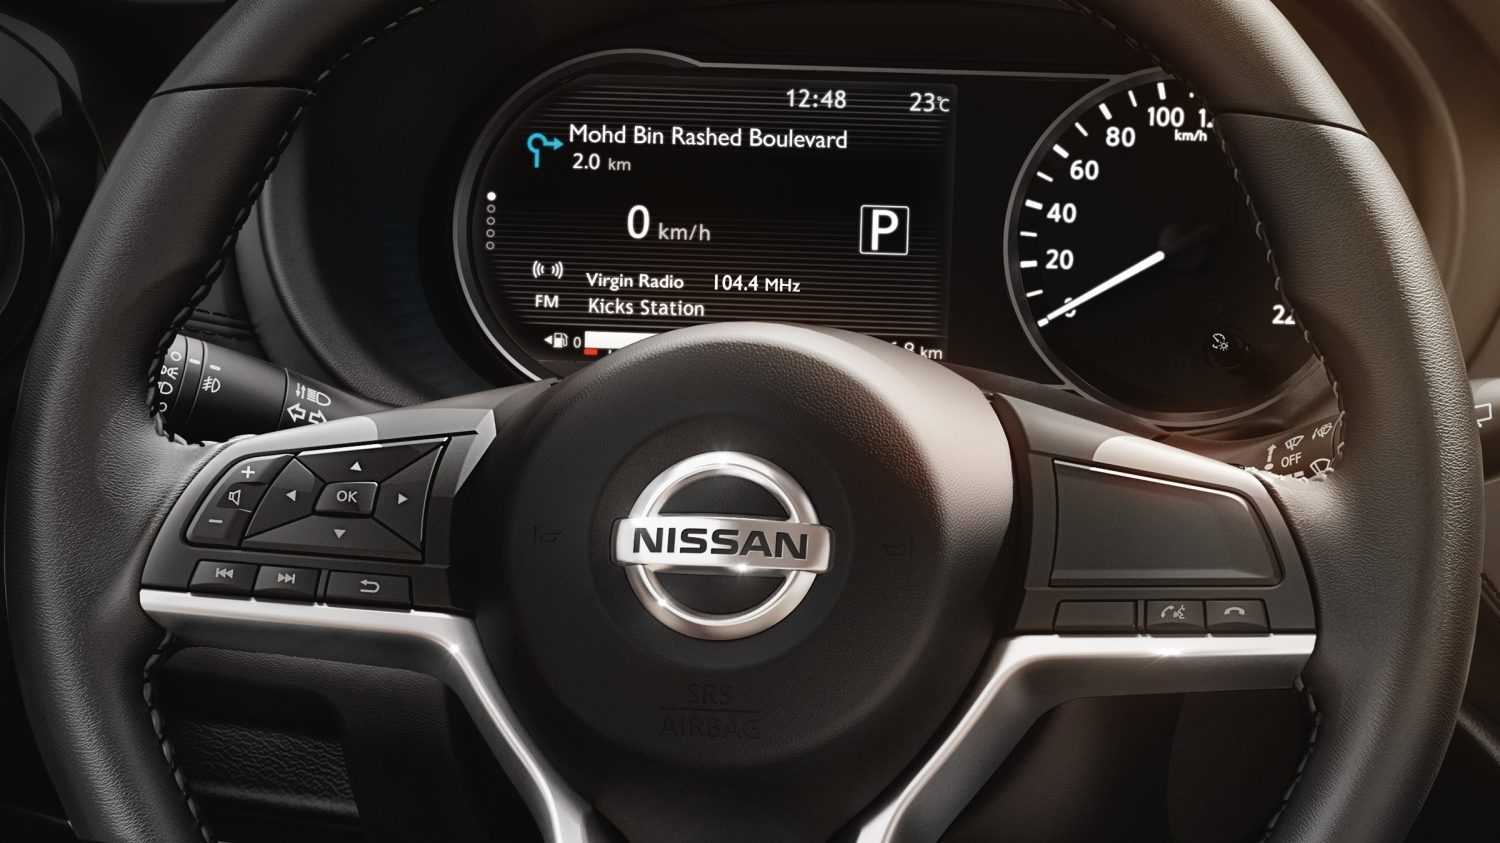 Nissan Kicks steering wheel controls and gauge cluster